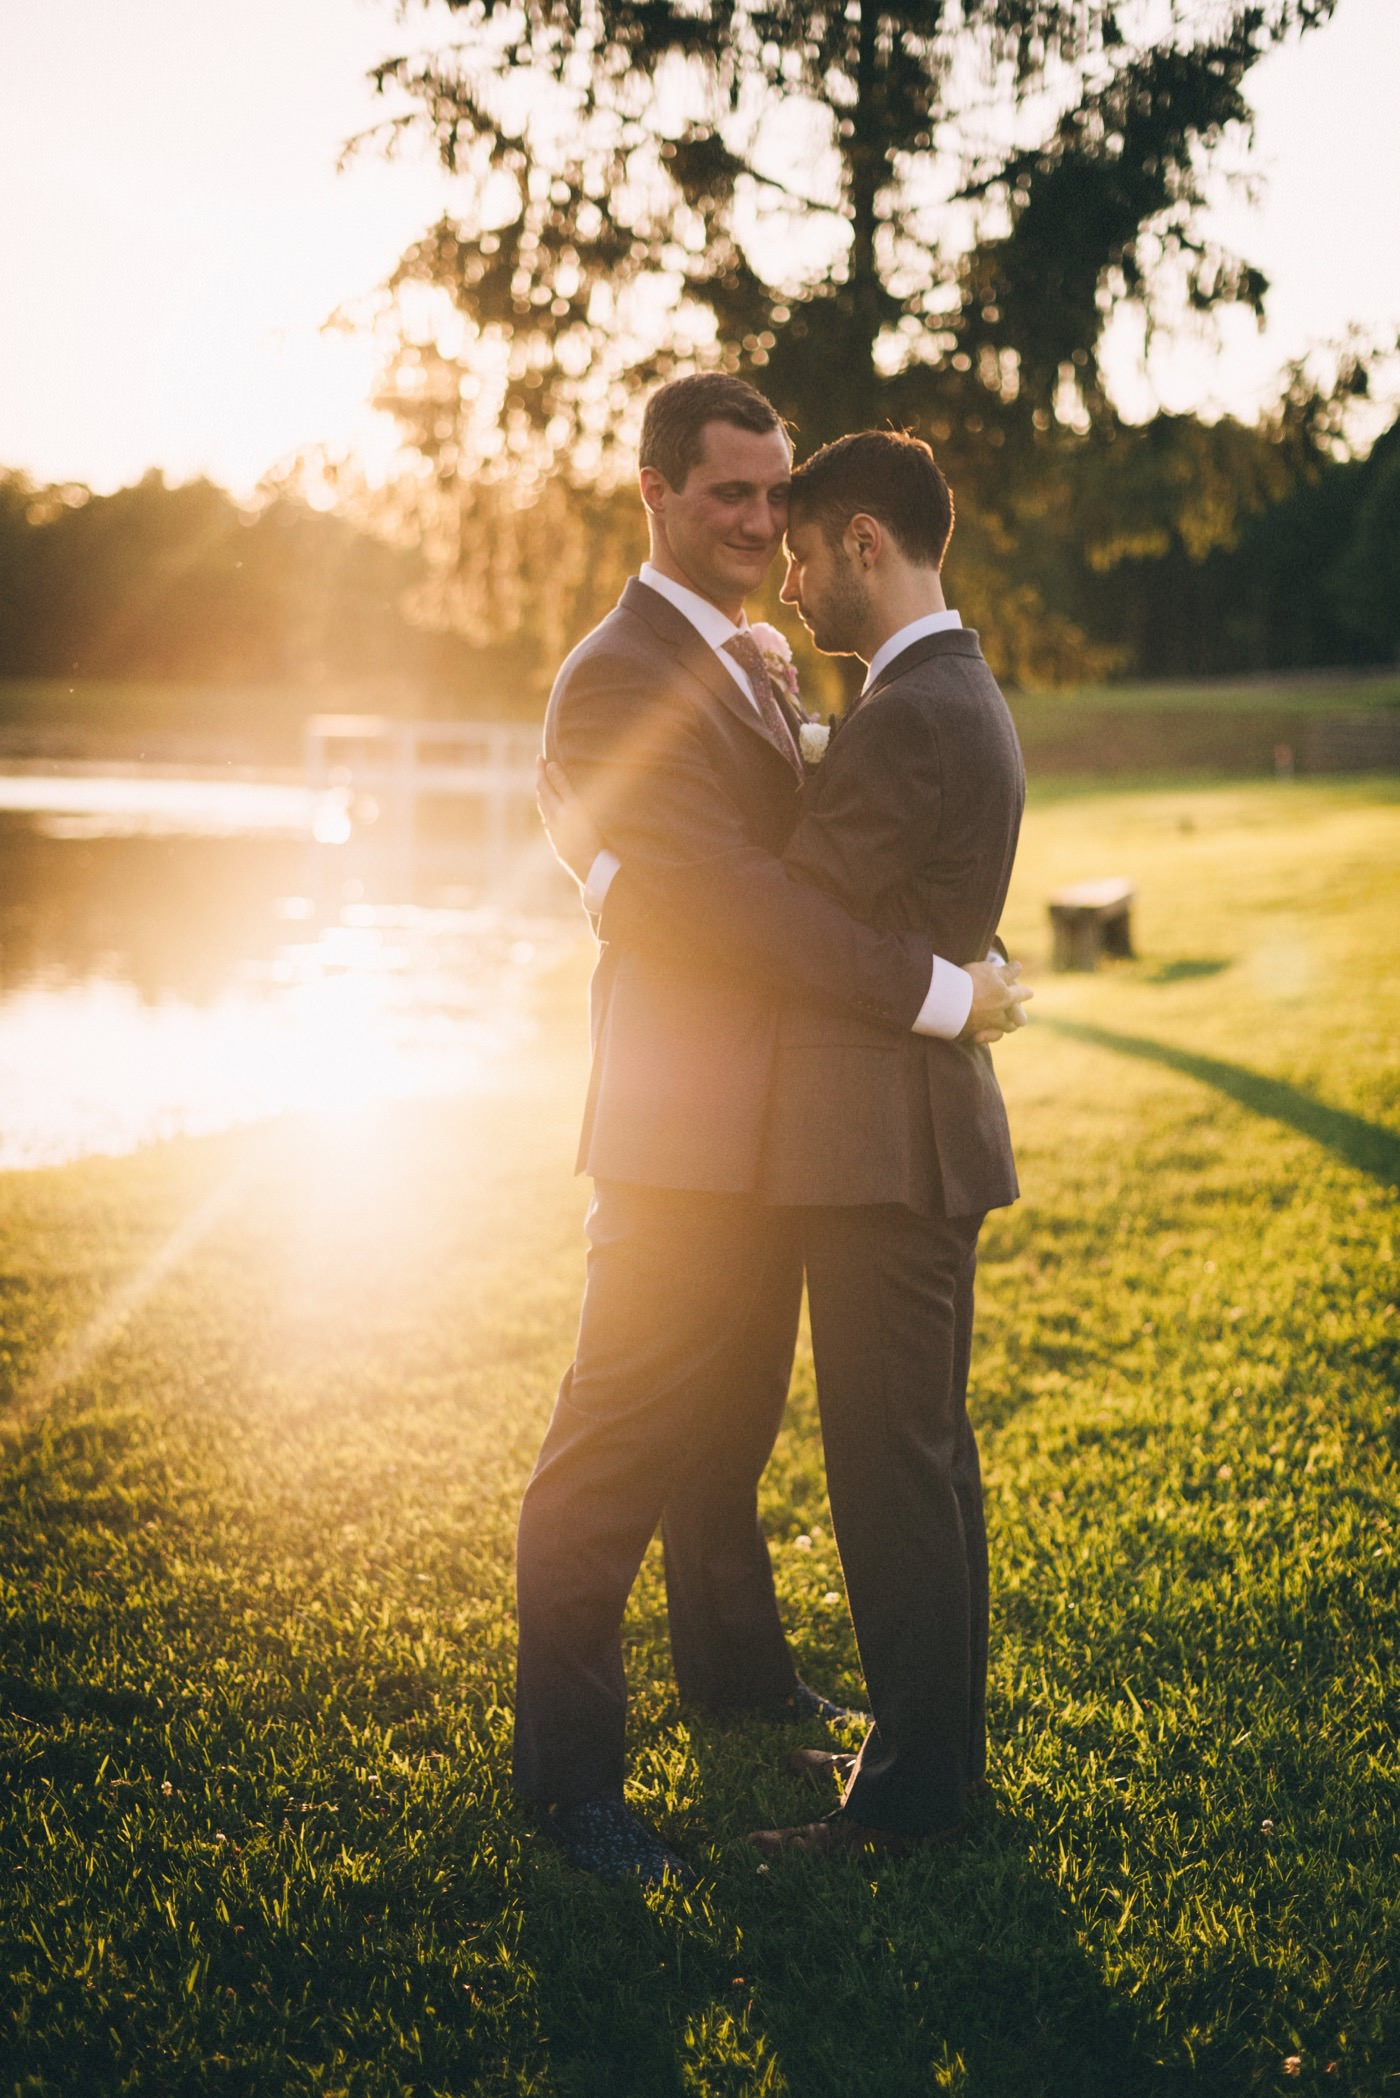 Will-Nate-Louisville-LGBTQ-Pride-Month-Kentucky-Wedding-By-Sarah-Katherine-Davis-Photograpy0059.JPG